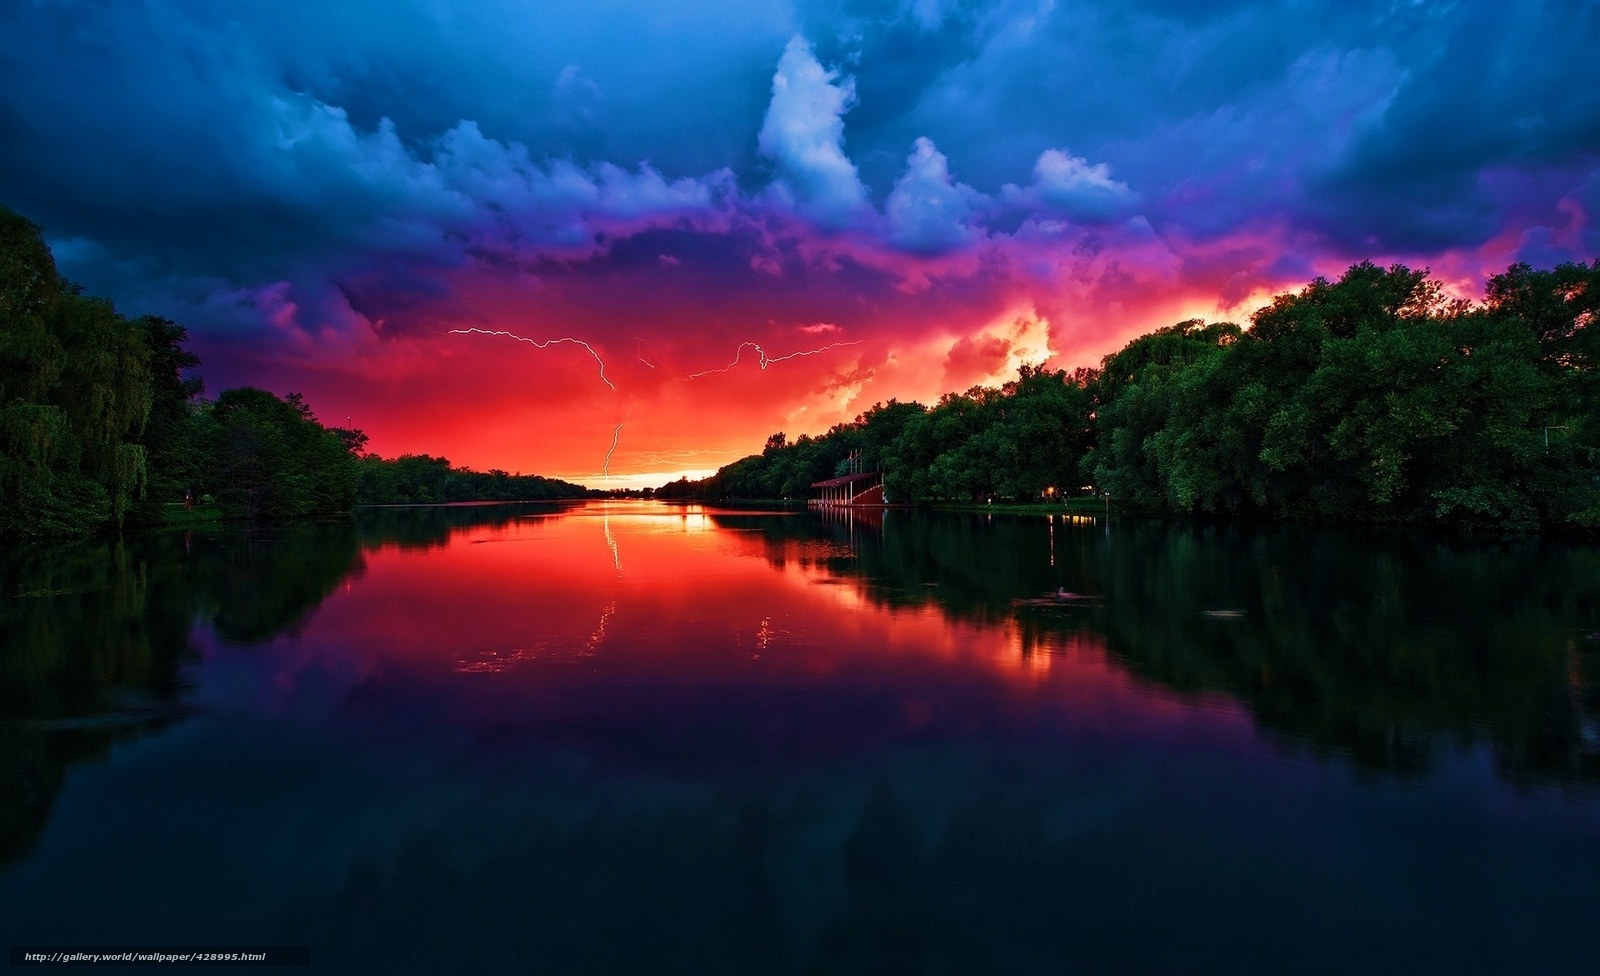 Download wallpaper clouds,  river,  lightning,  sunset free desktop wallpaper in the resolution 1920x1171 — picture №428995